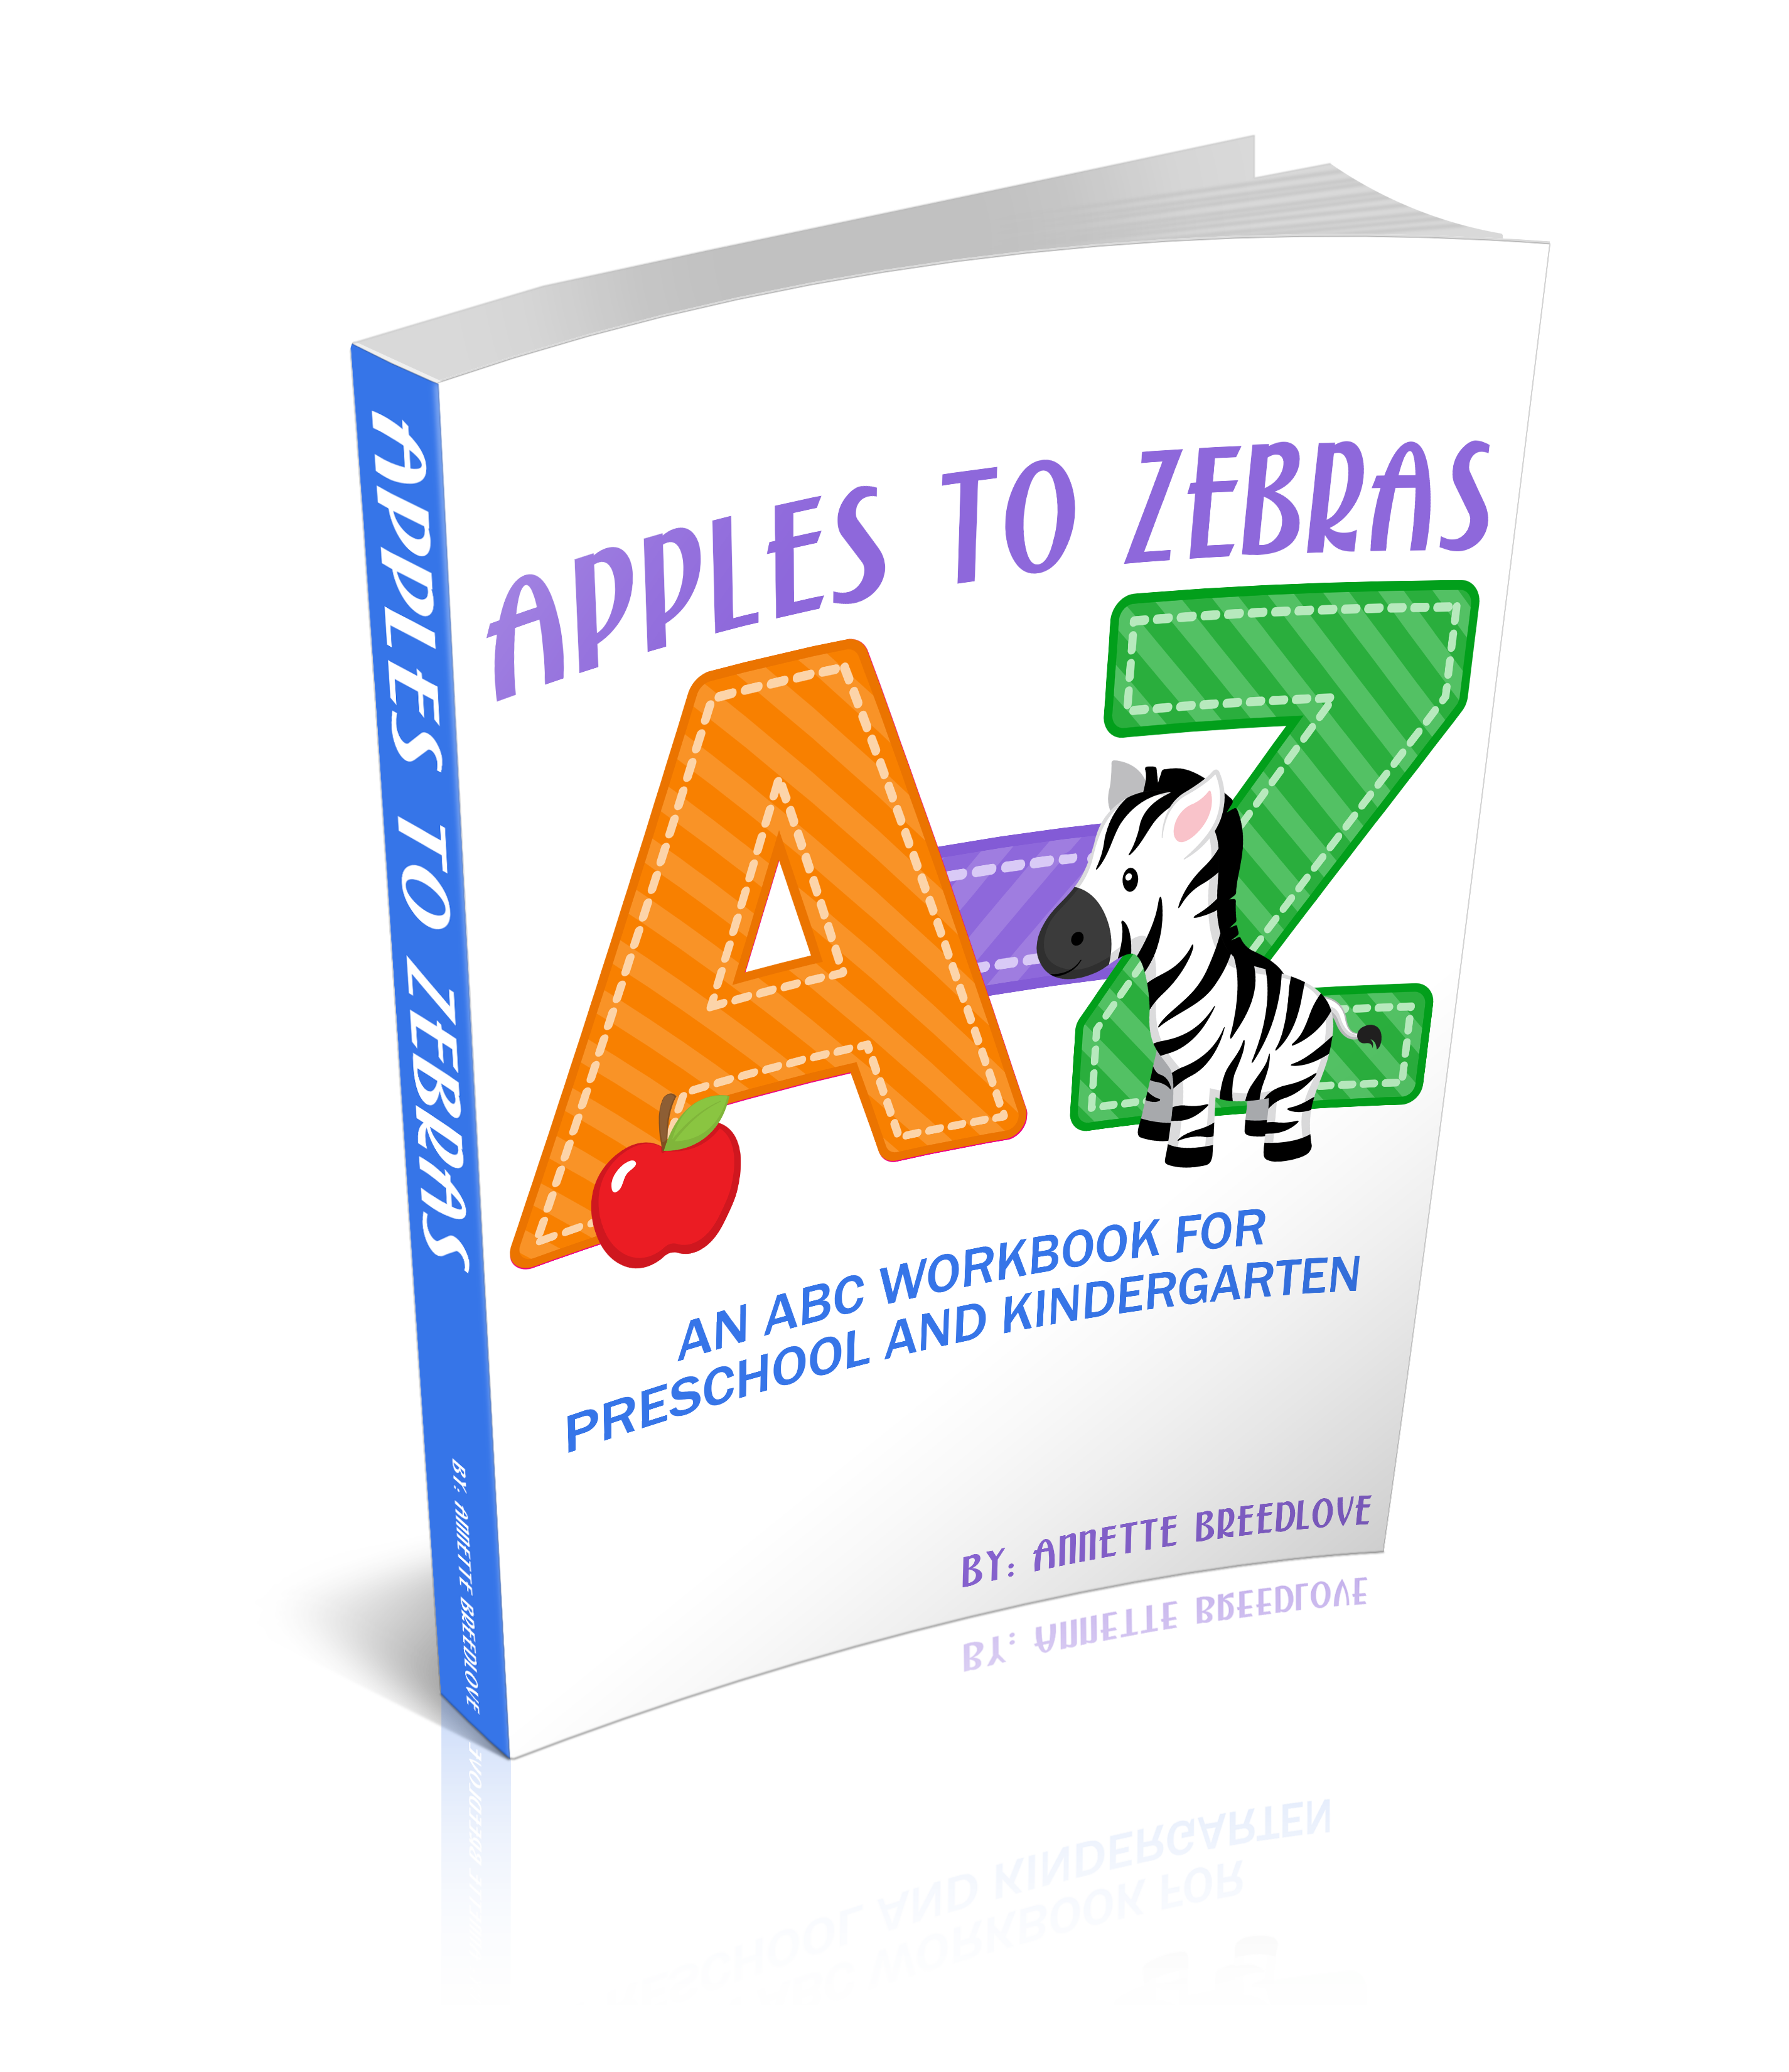 Apple with 123 and abc clipart free stock Apples to Zebras: An ABC Workbook for Preschool and Kindergarten free stock